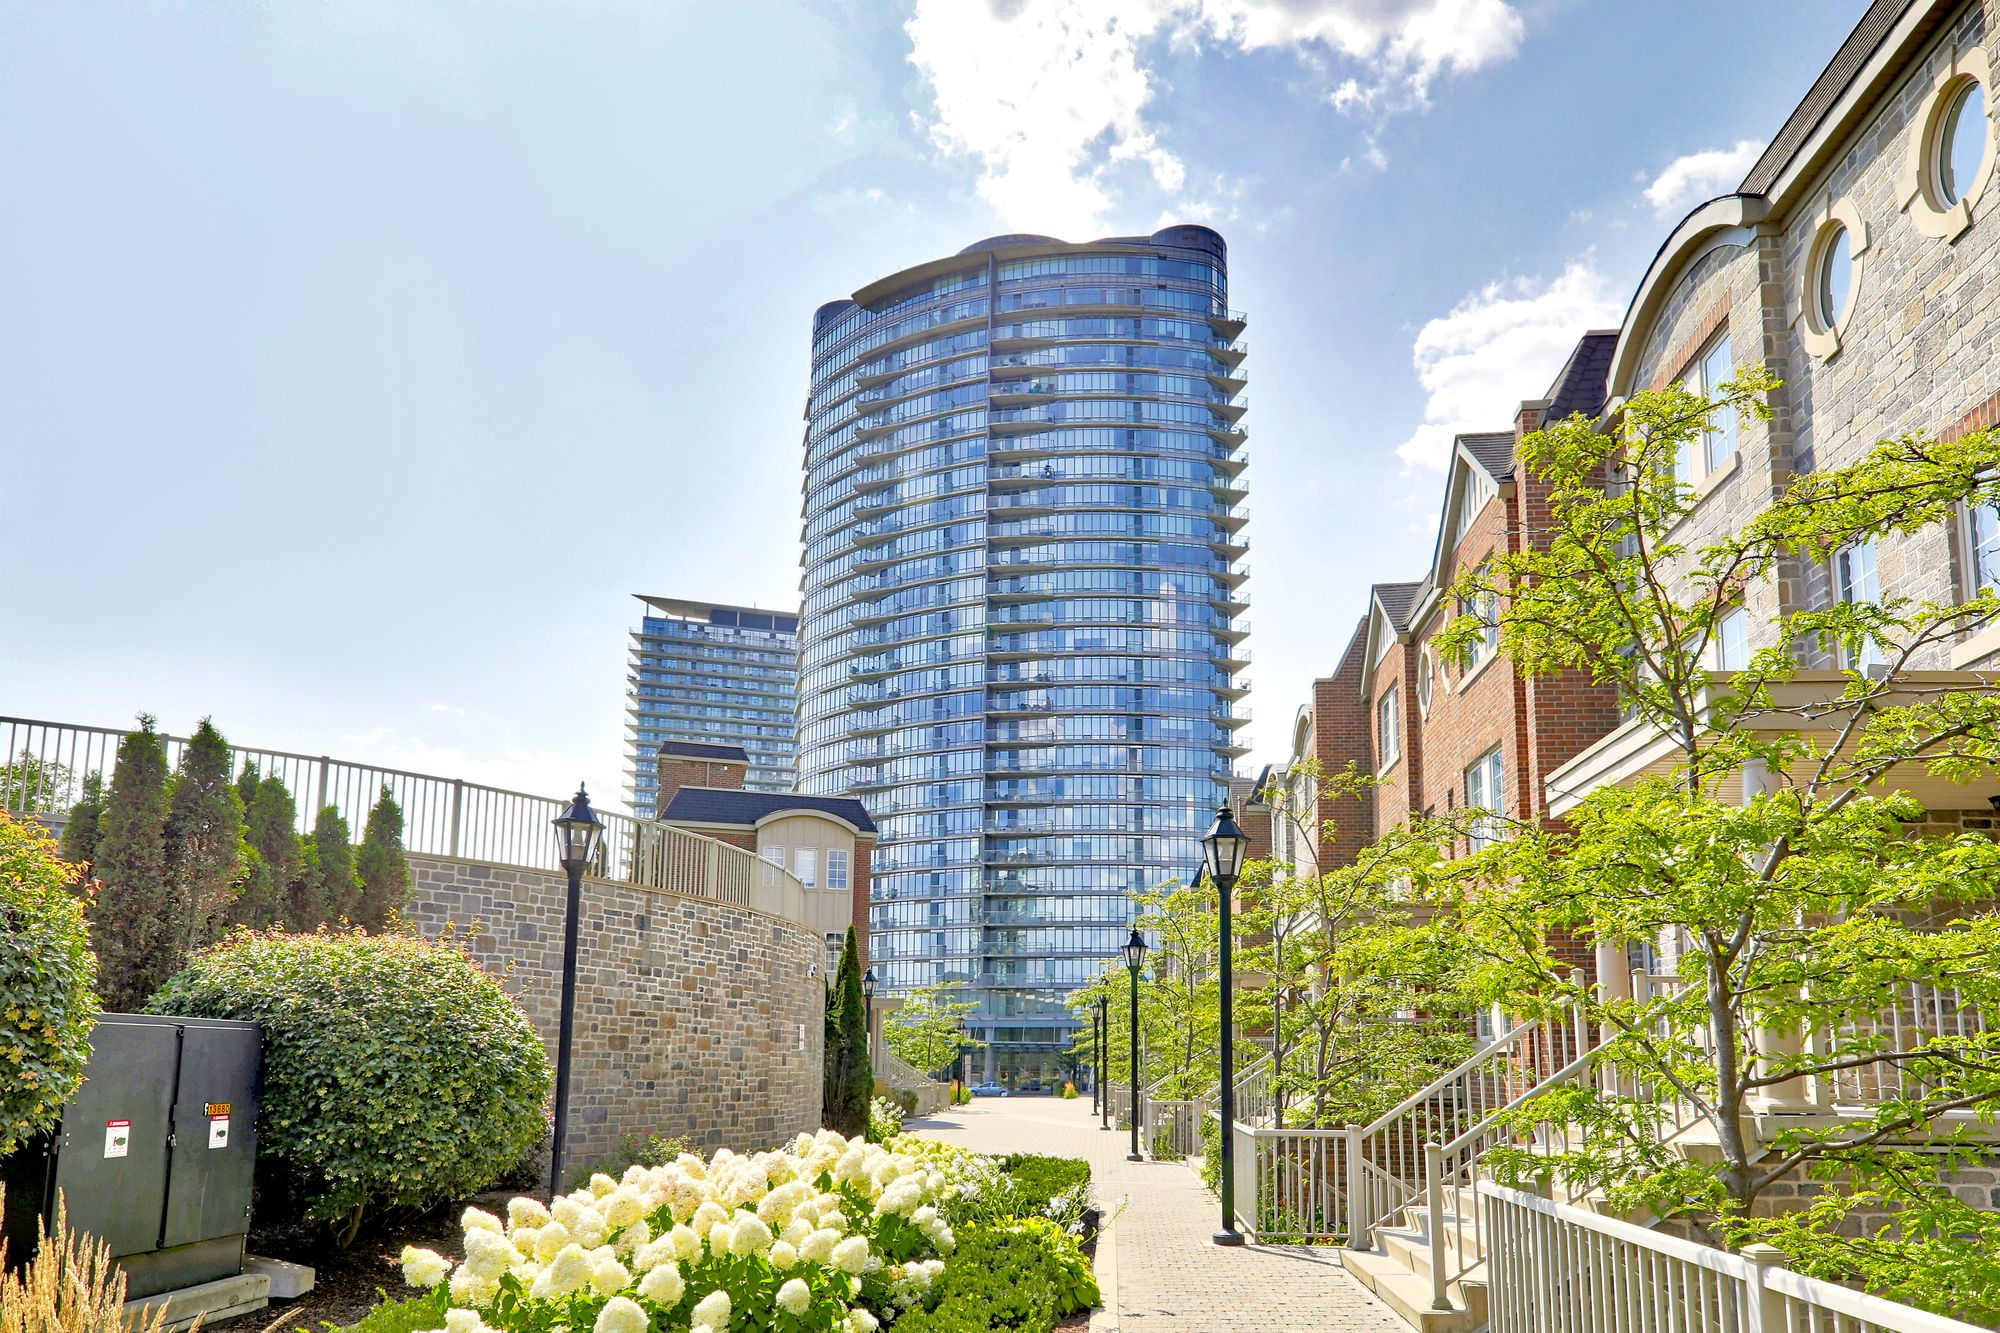 Windermere By The Lake at 15 Windermere Ave. This condo is located in  West End, Toronto - image #2 of 7 by Strata.ca